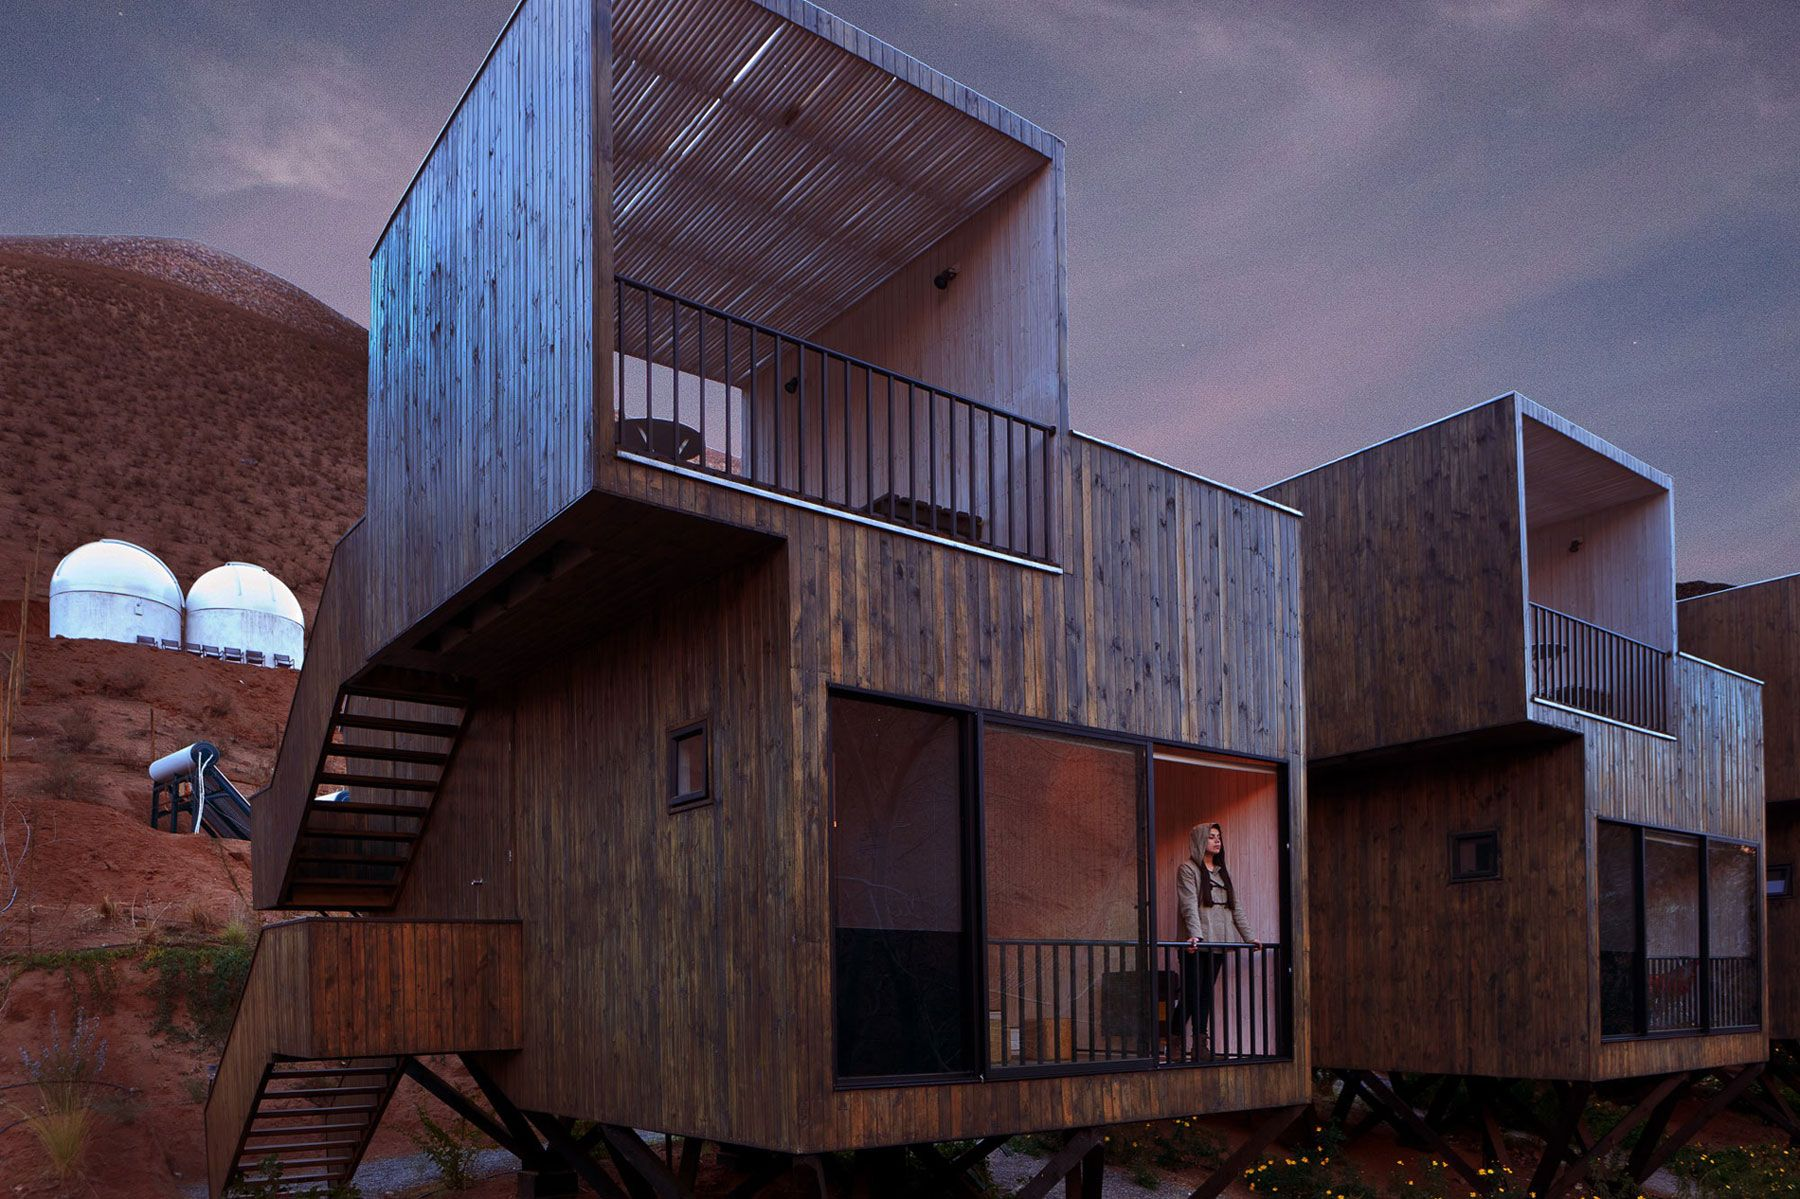 Elqui Domos Hotel by RDM Arquitectura (Video)